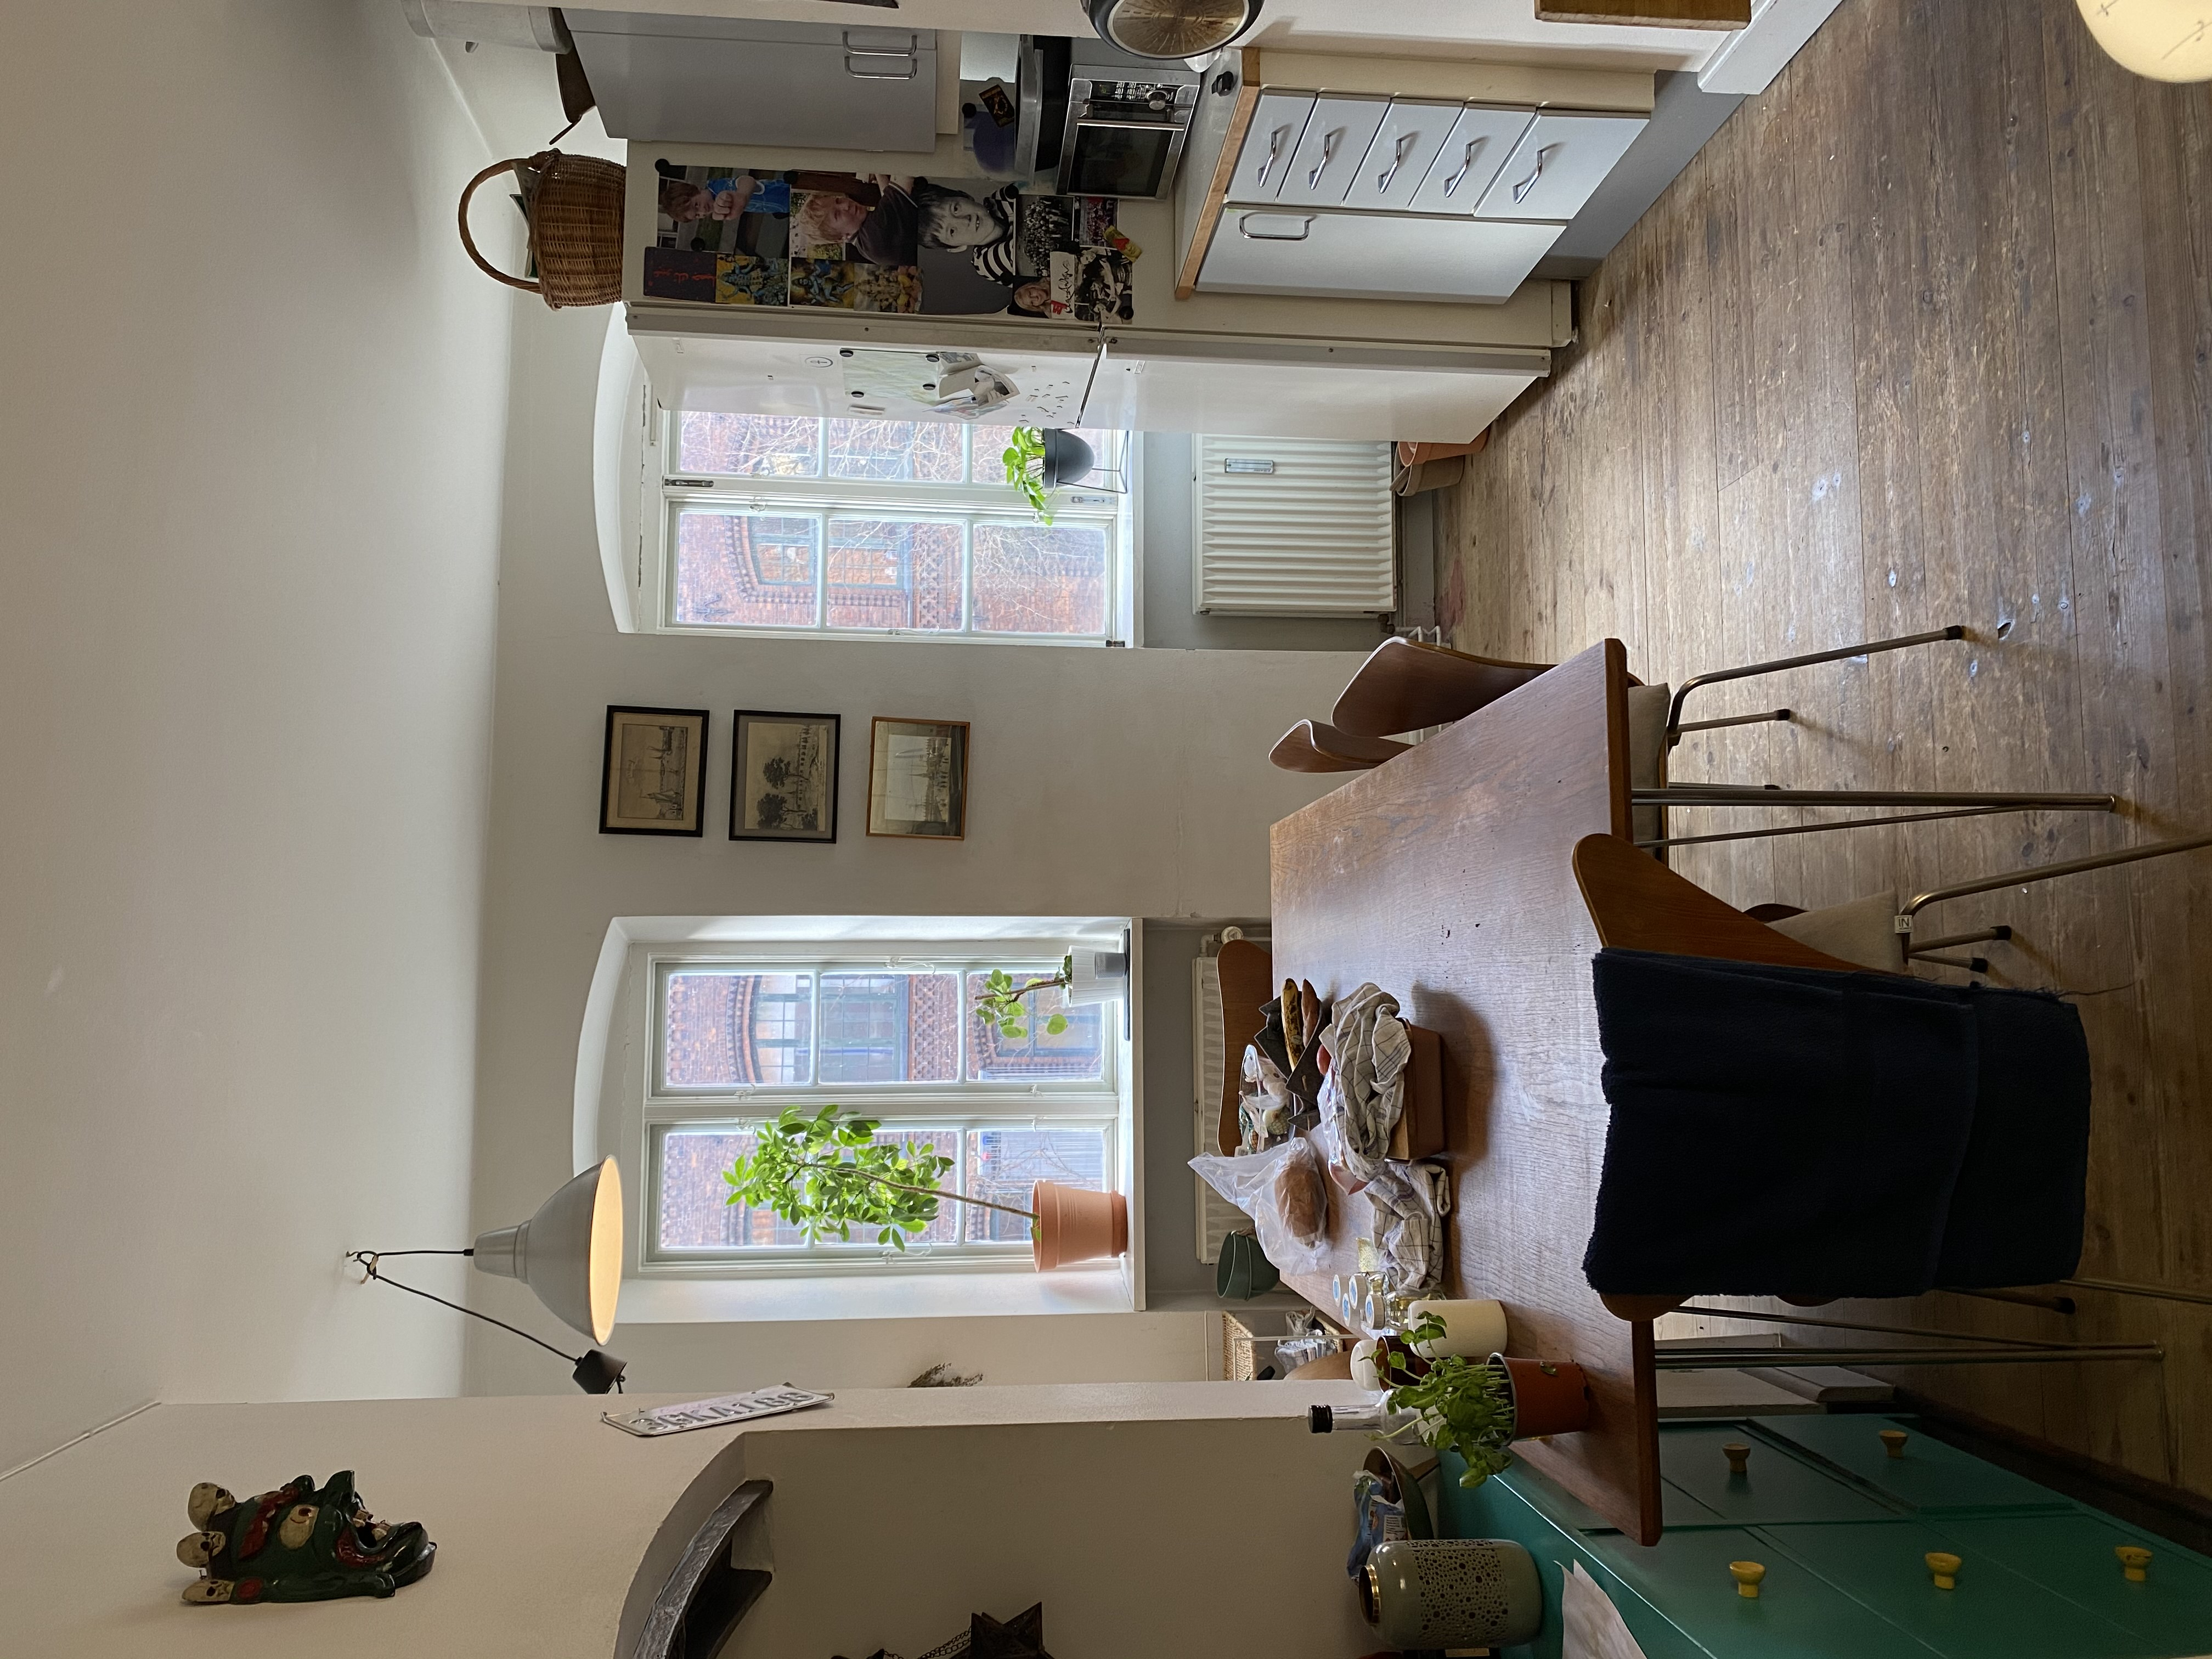 Renting UNFURNISHED 25m2 room in shared apartment in Vesterbro